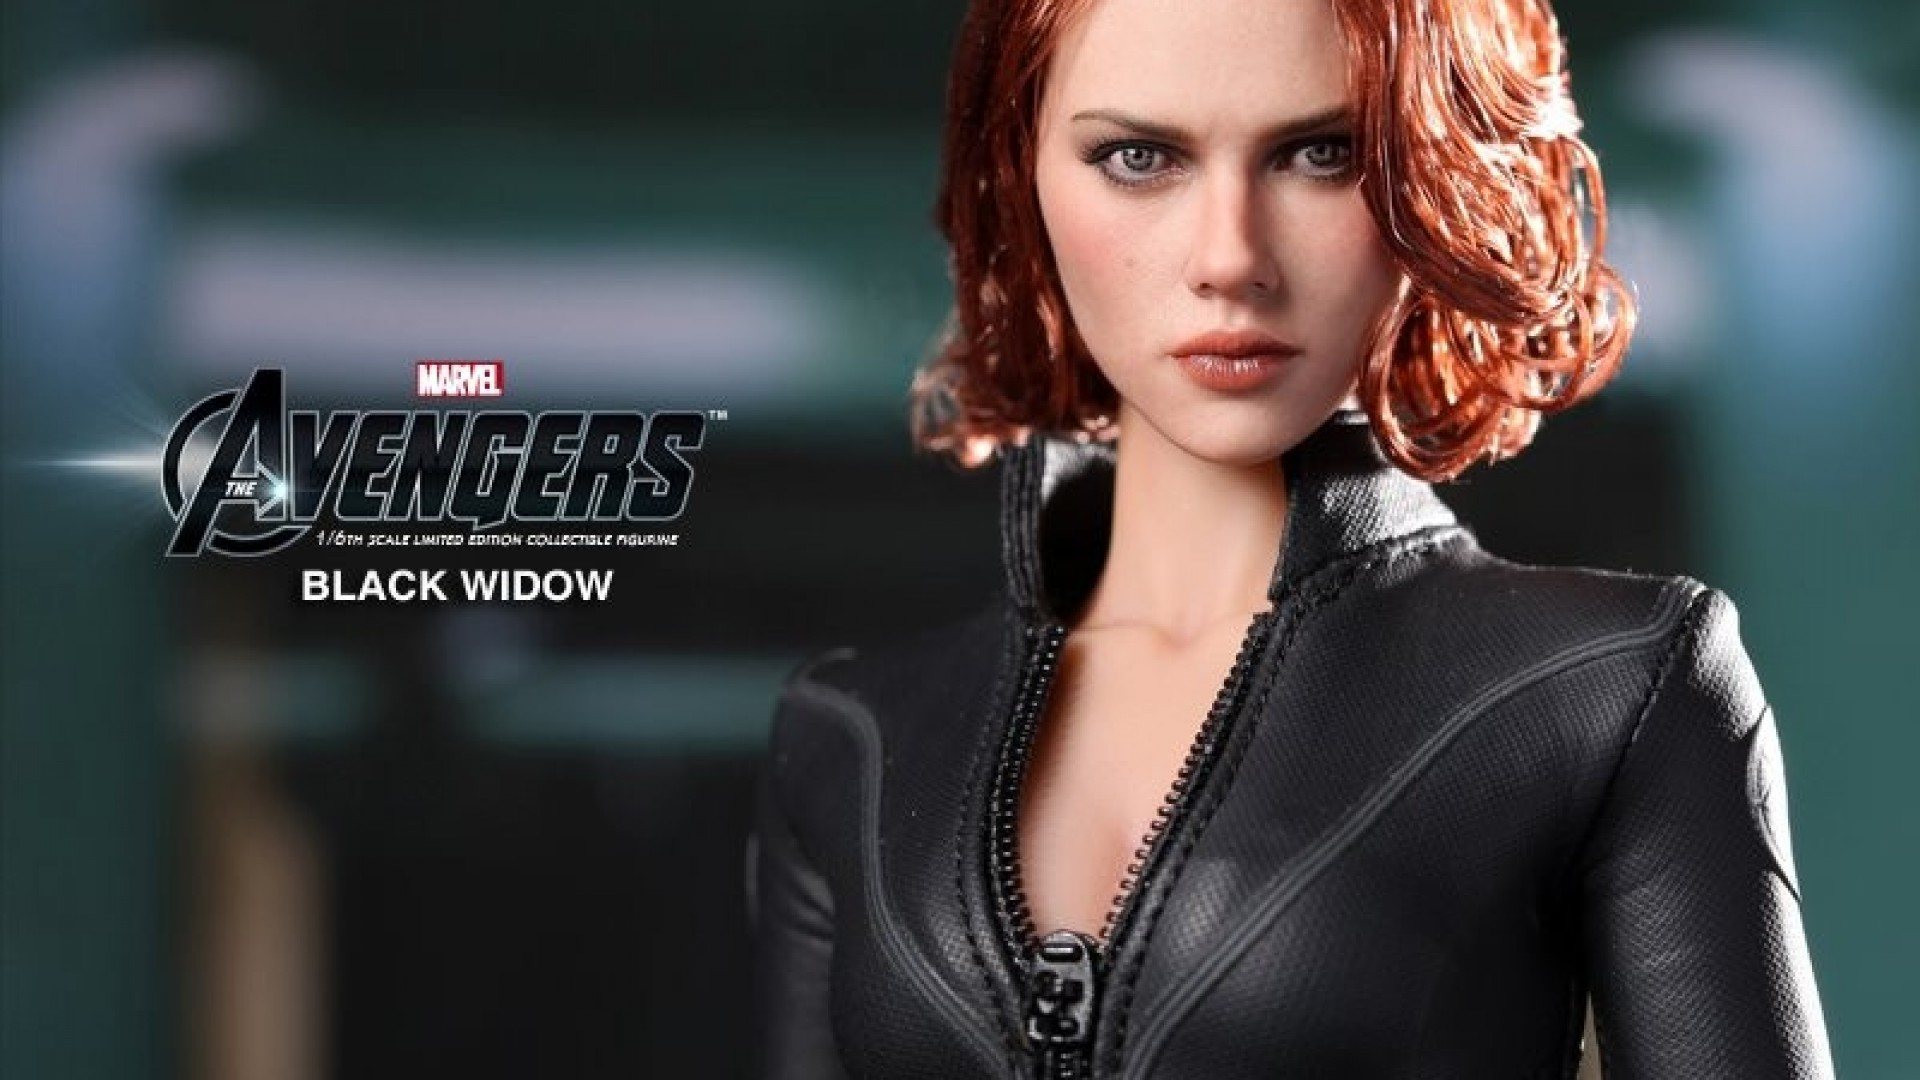 Black Widow Avengers Figurines Wallpaper   MixHD wallpapers 1920x1080